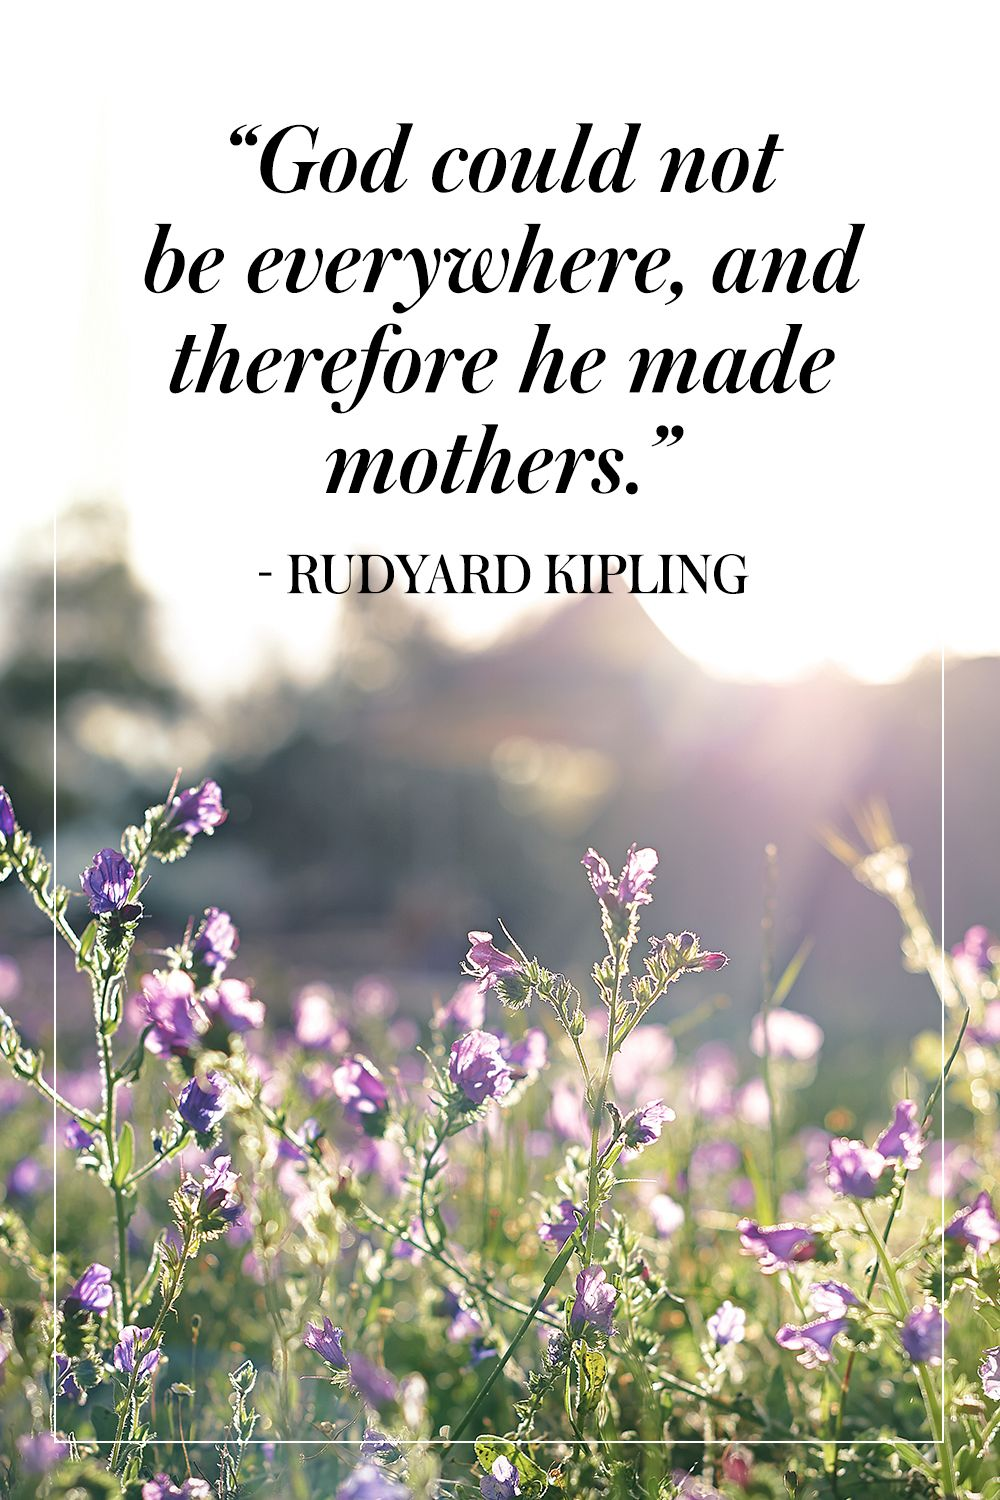 """""""God could not be everywhere, and therefore he made mothers."""" - Rudyard Kipling"""